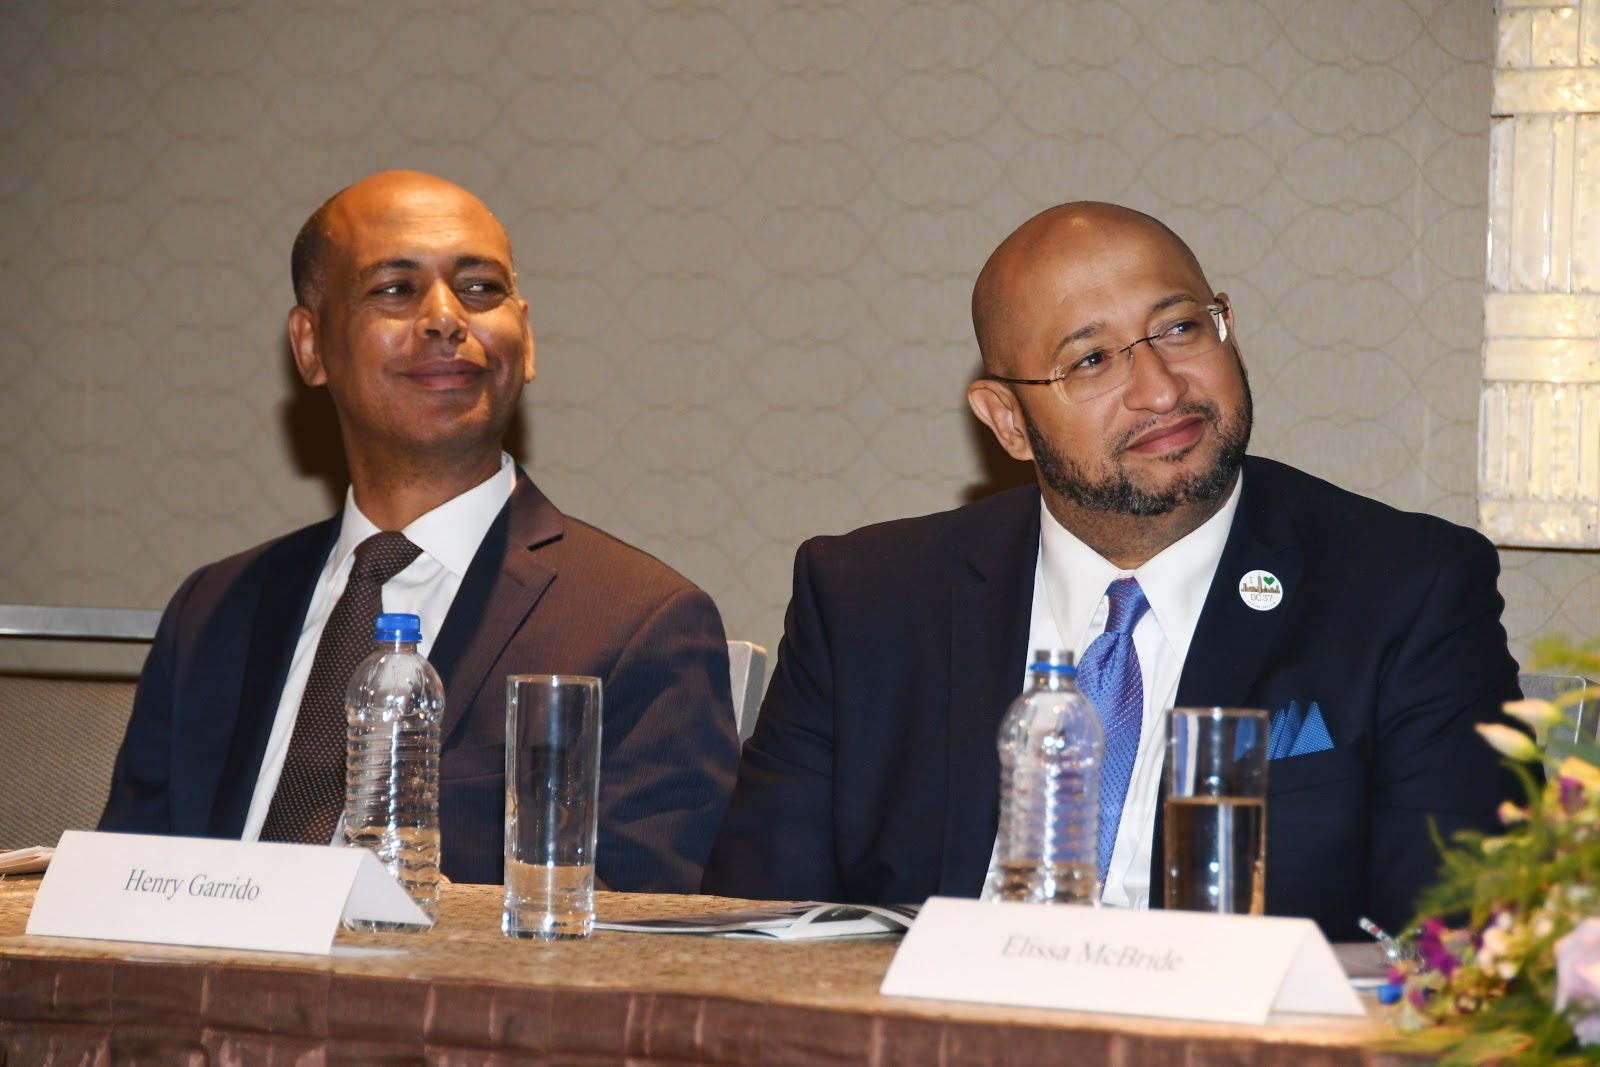 Tefere Gebre and Henry Garrido at the 2018 JLC HRA Awards Dinner.JPG